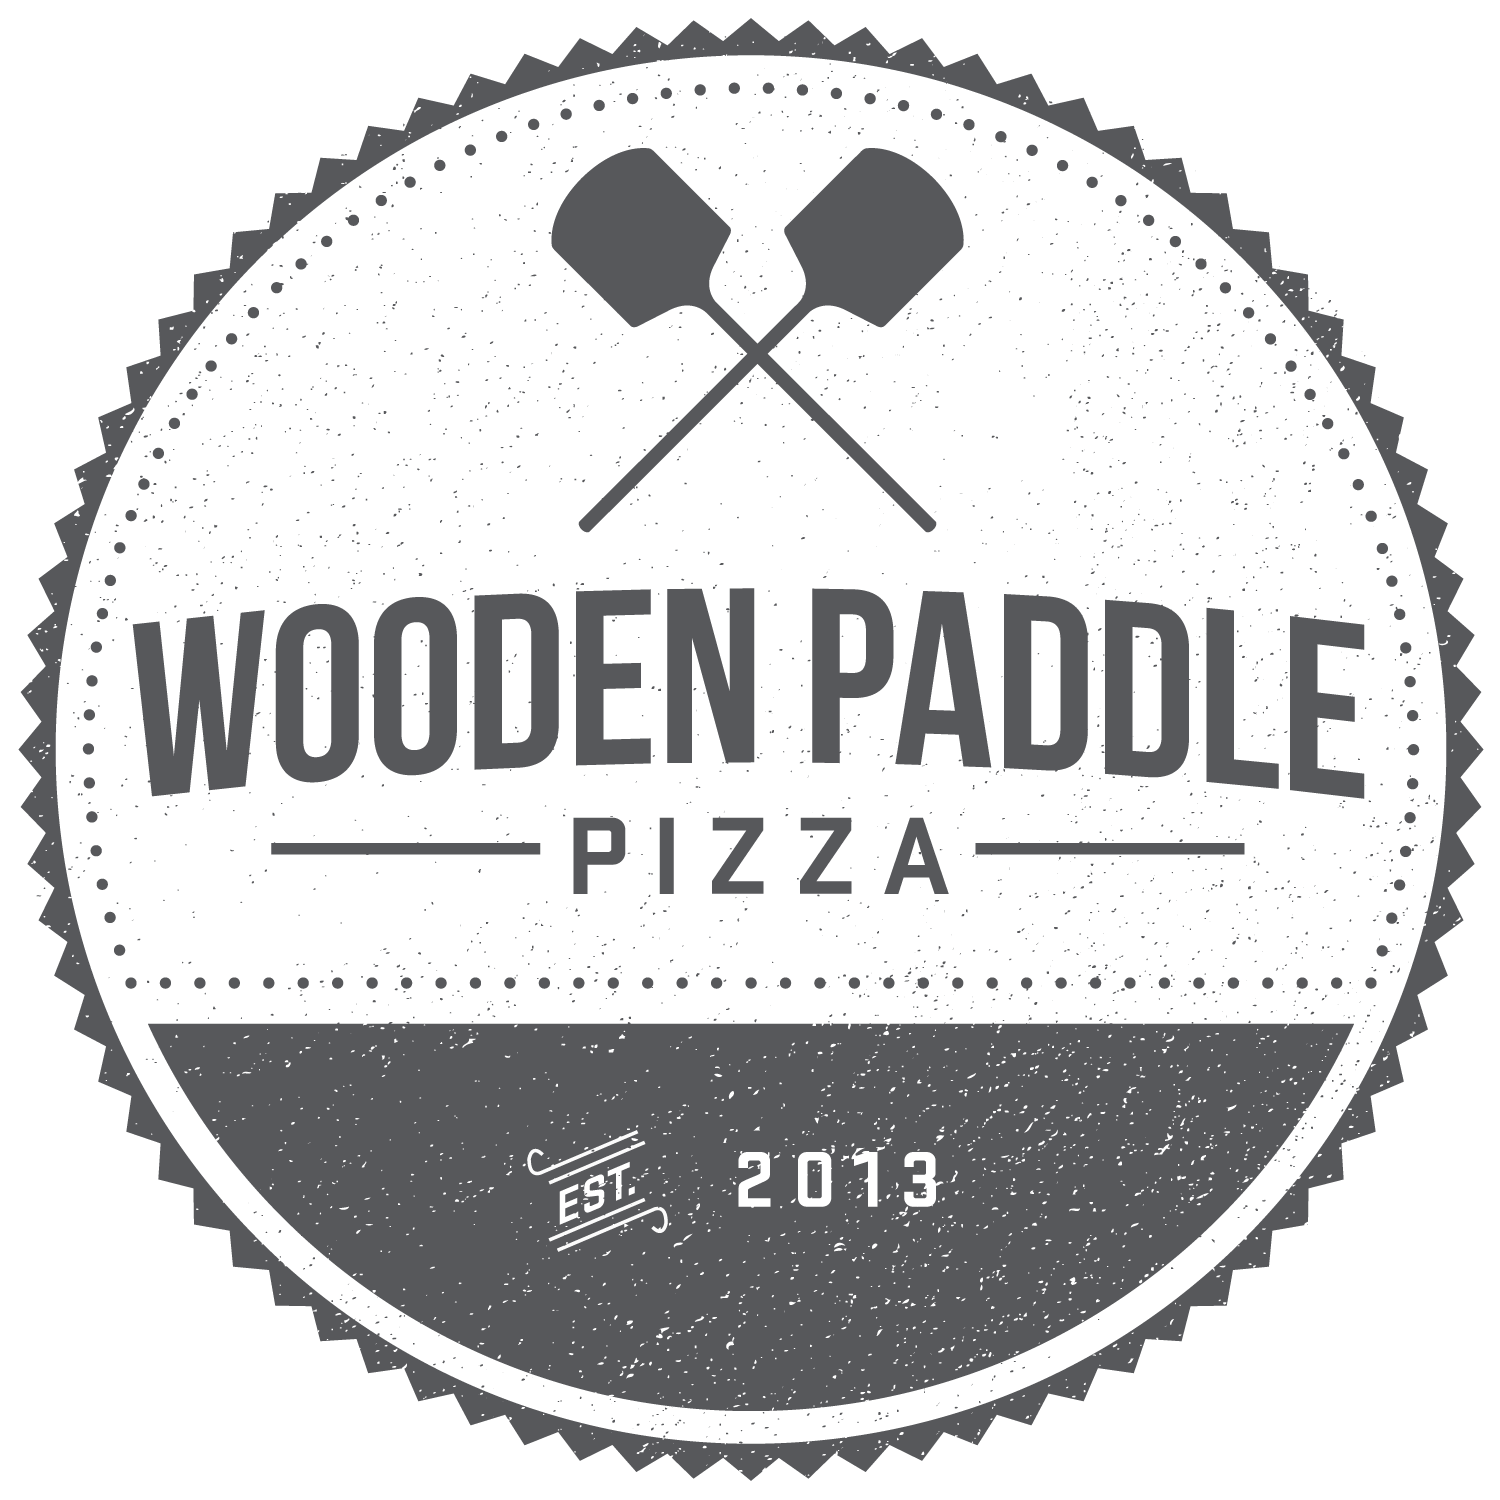 Wooden Paddle Pizza